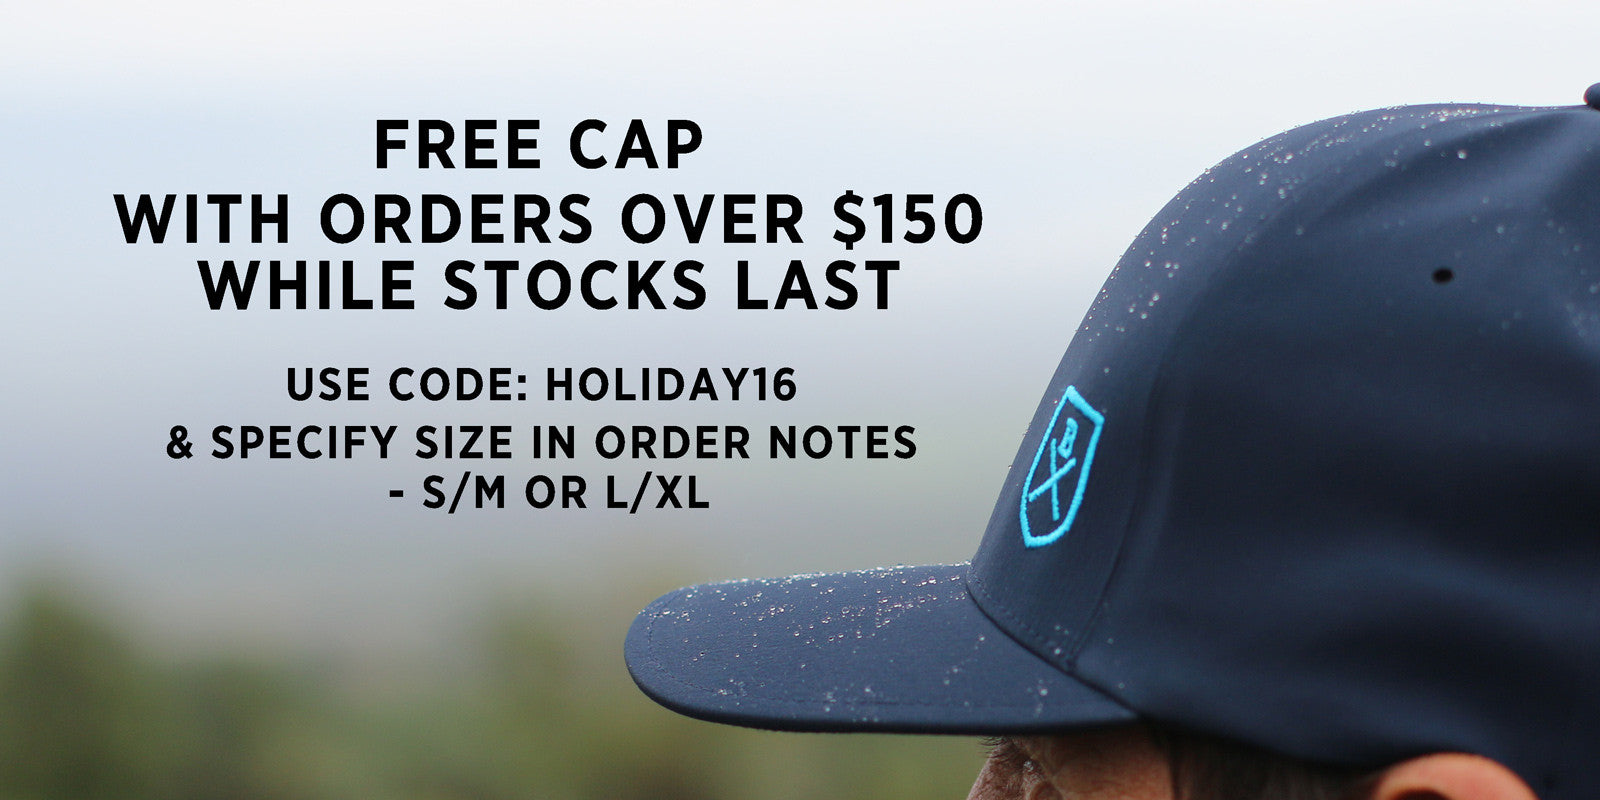 Holiday Promotion - Free Cap For Orders Over $150 While Stocks Last